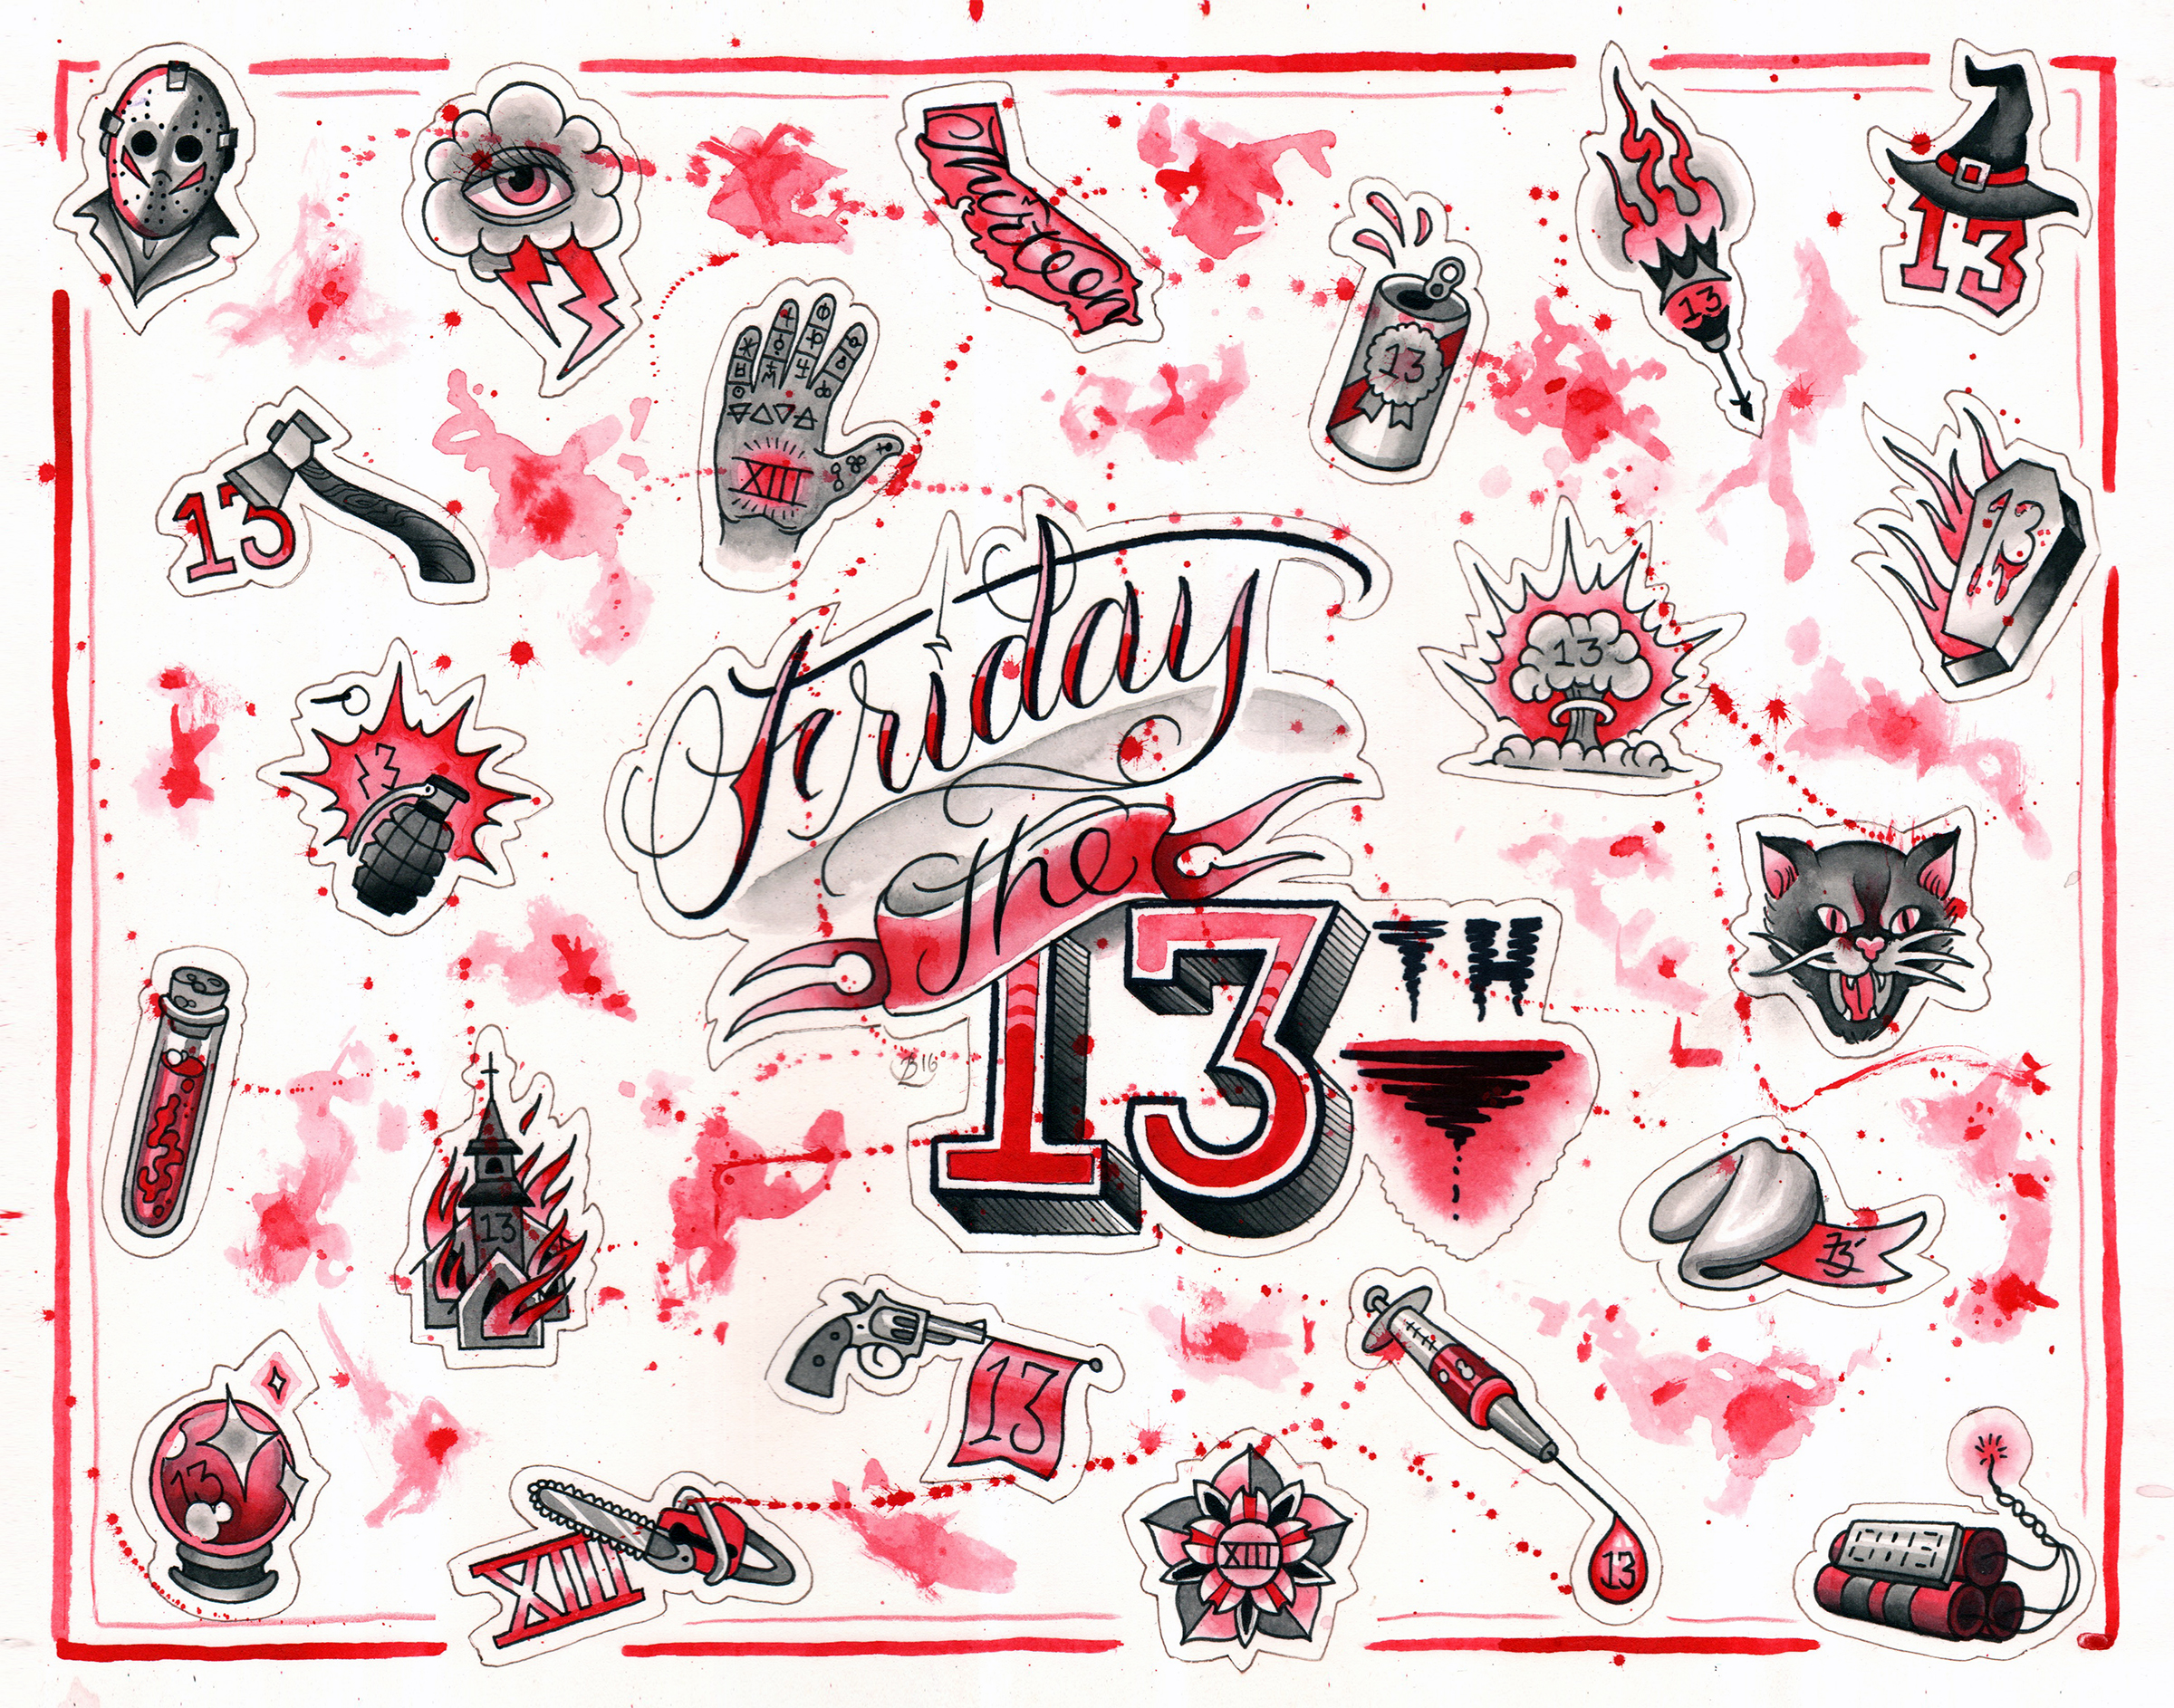 friday the 13th flash sheet 2016